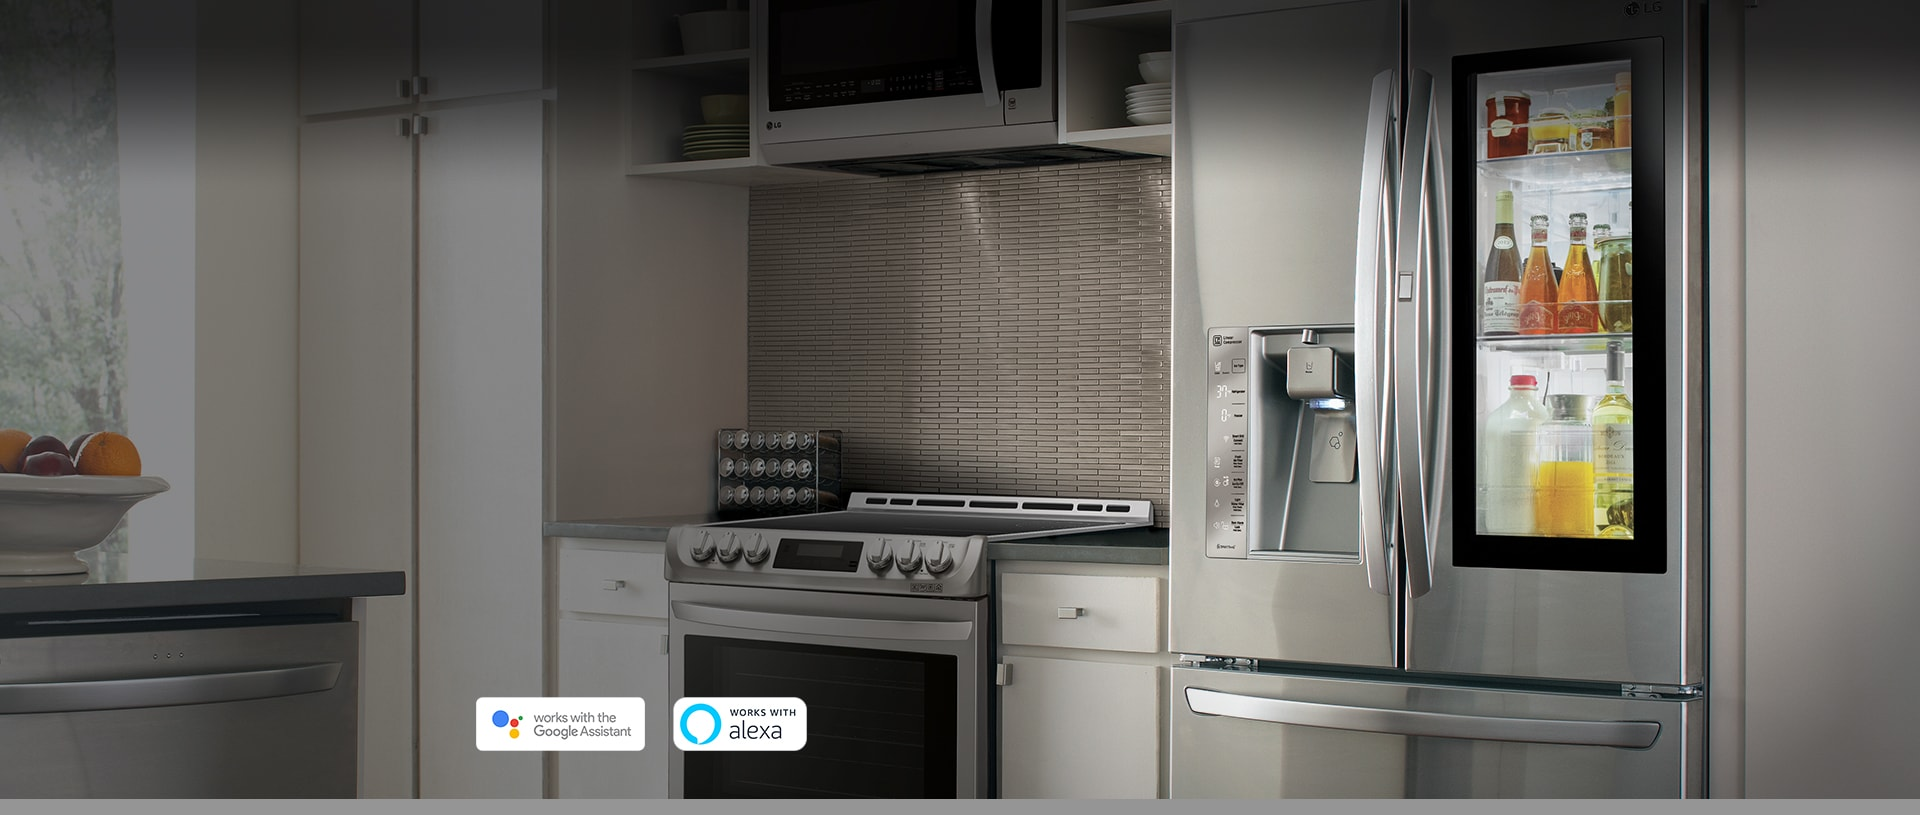 LG Smart Refrigerators: Powered by ThinQ™ IOT | LG USA